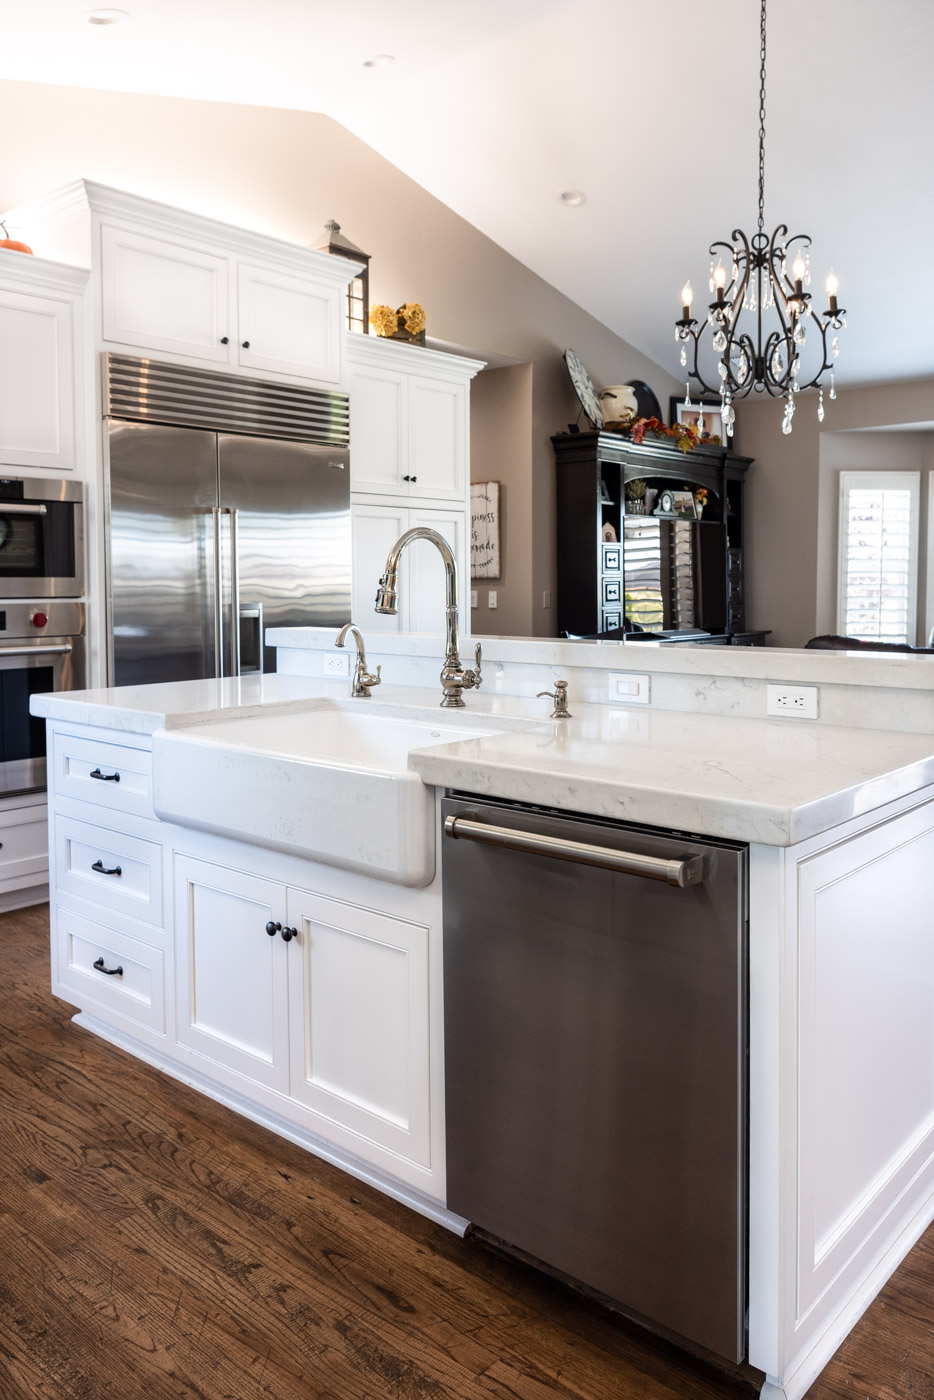 Transitional Country Cottage style kitchen with white recessed panel painted cabinets and farmhouse sink